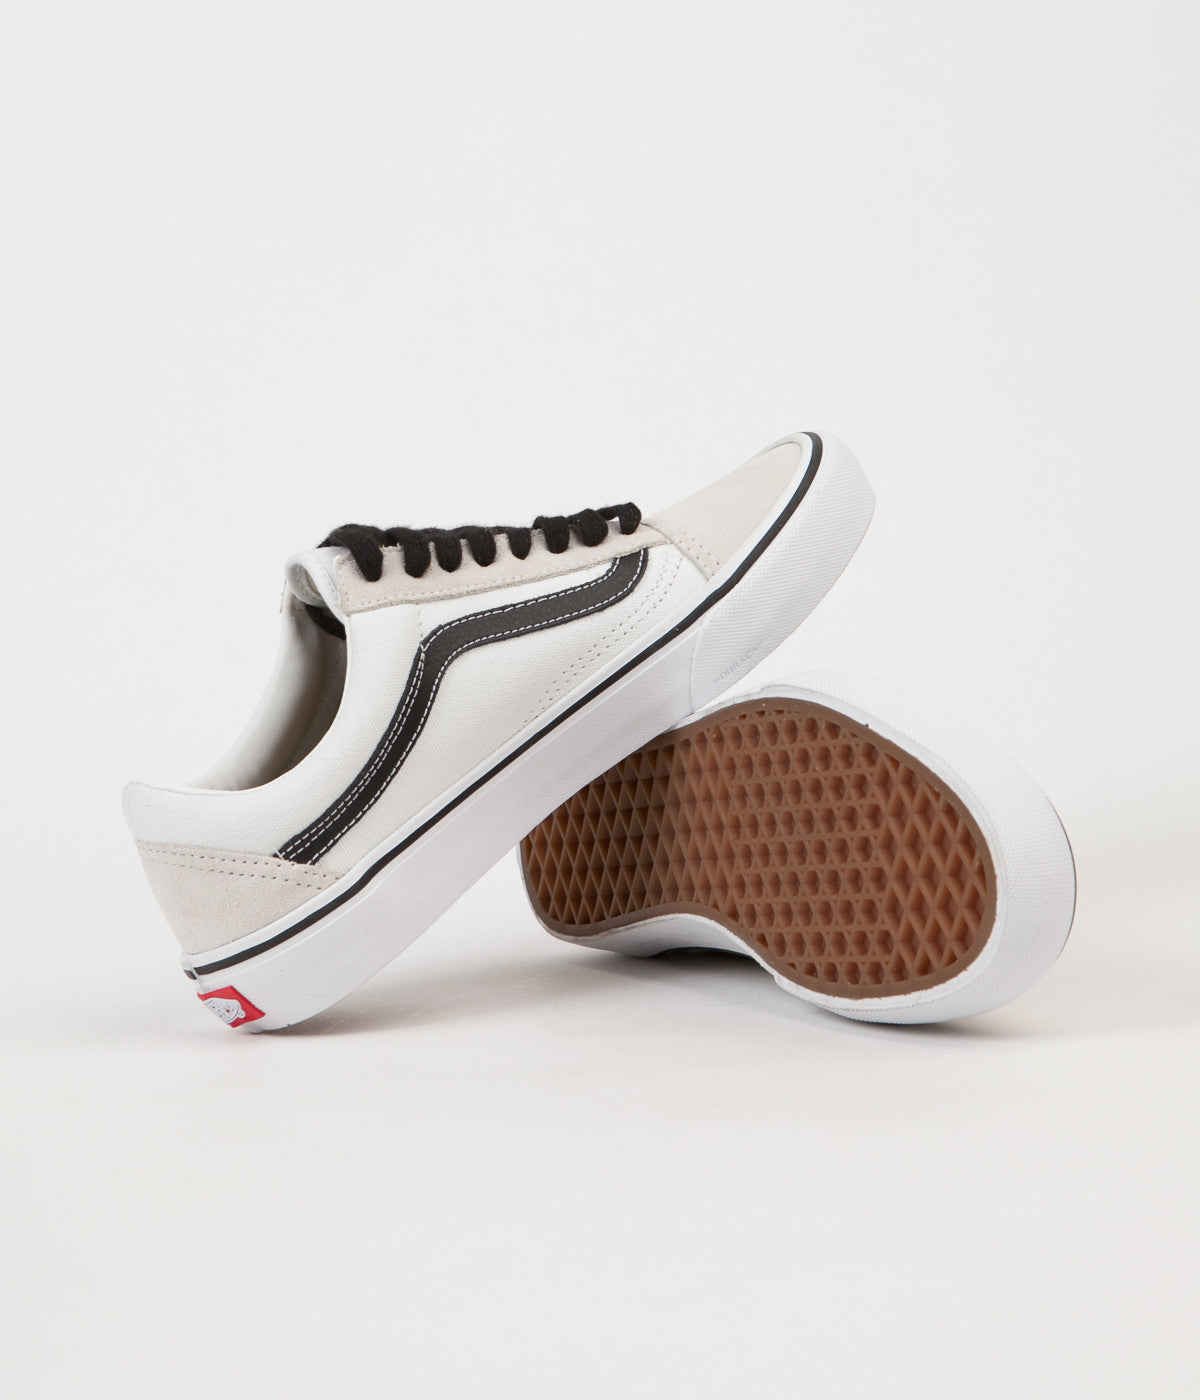 Vans 50th Old Skool Pro  92 Shoes - White   Black   Flatspot 85af61c3f9